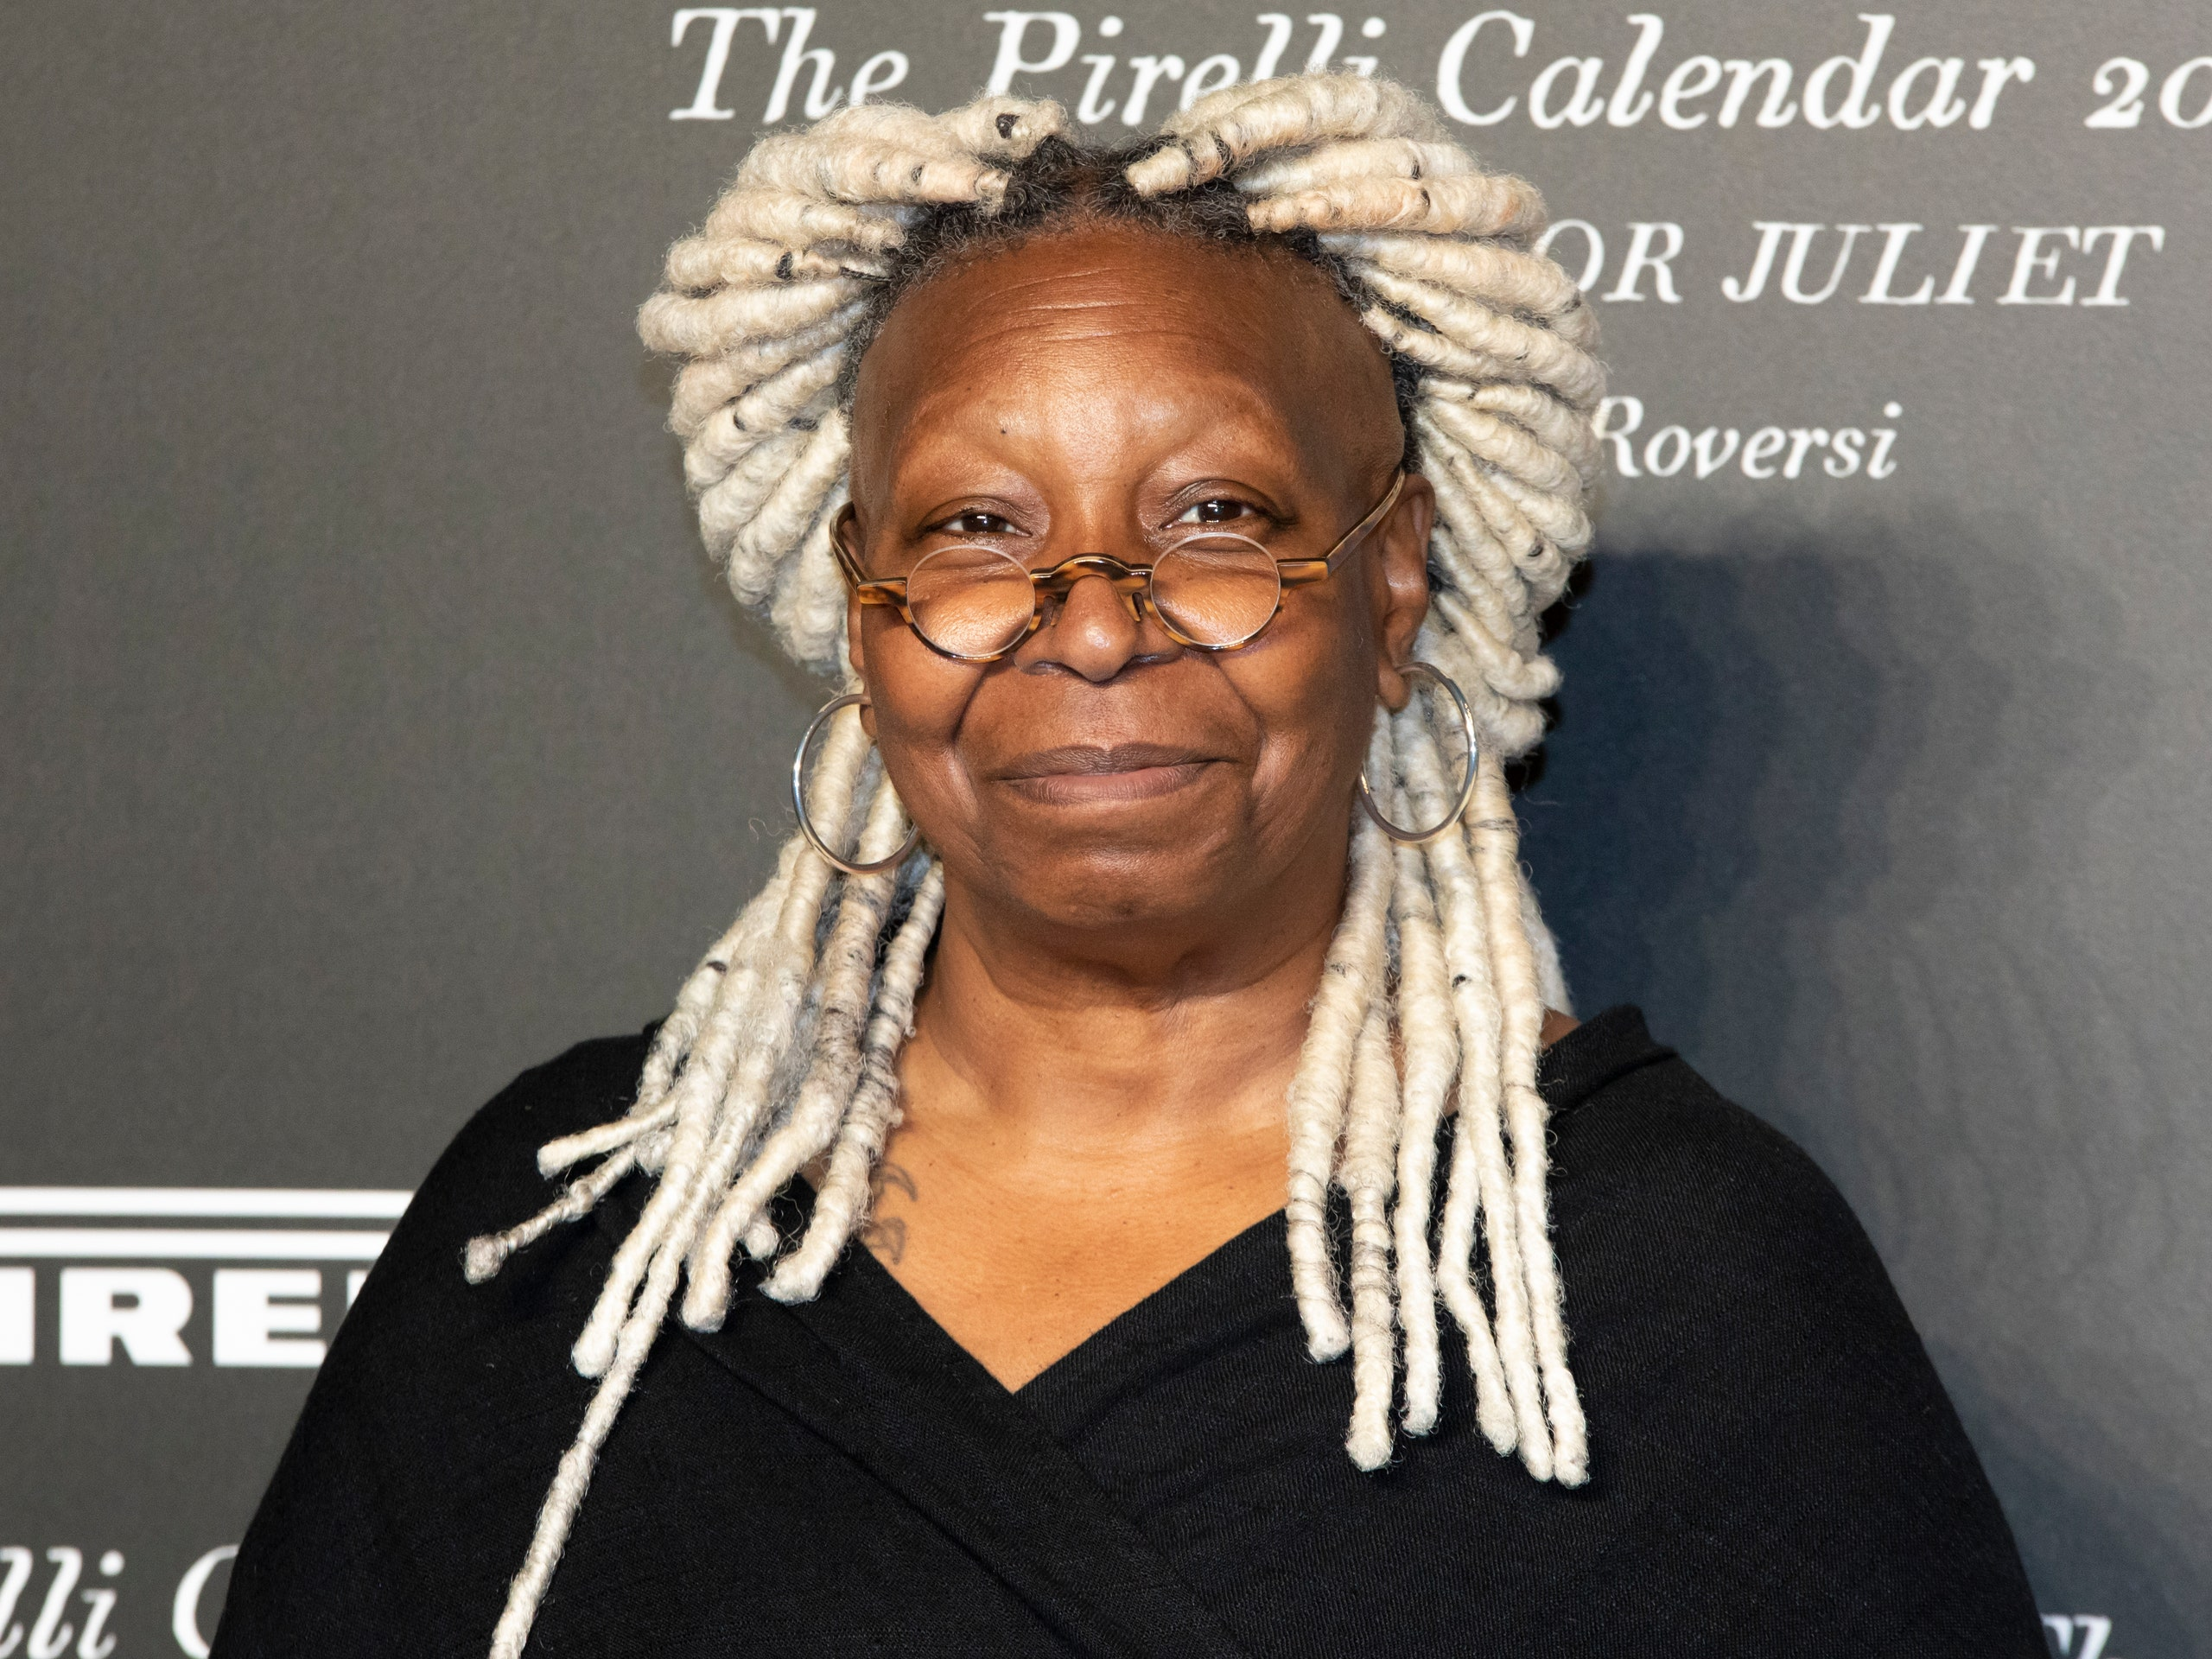 Whoopi Goldberg The View Host With 4 Year Contract Deal to Stay On Talk Show!